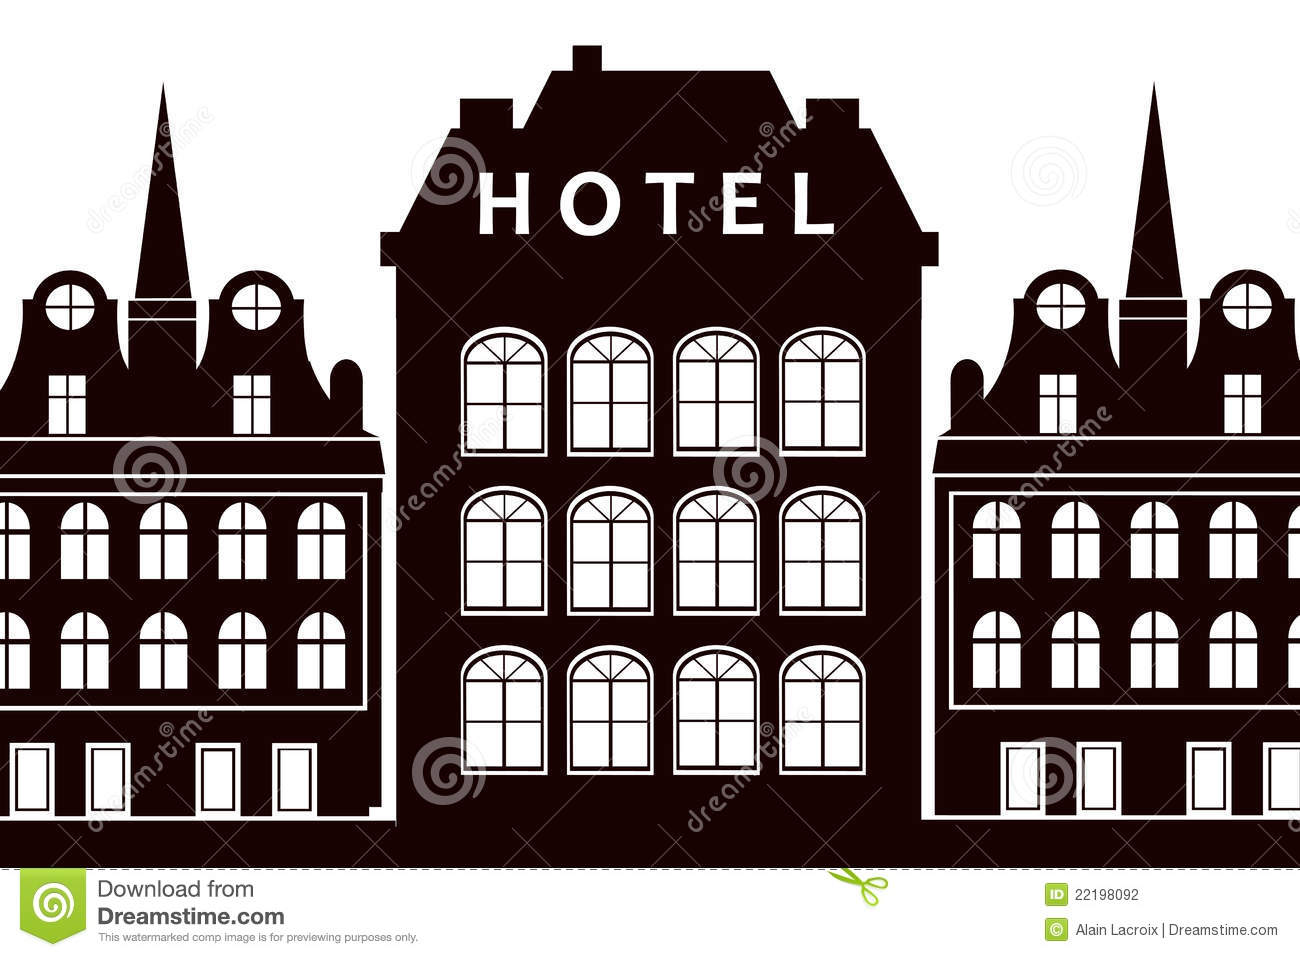 lavish and luxurious hotels must visit  crave bits hotel clipart black hotel clip art black white transparent